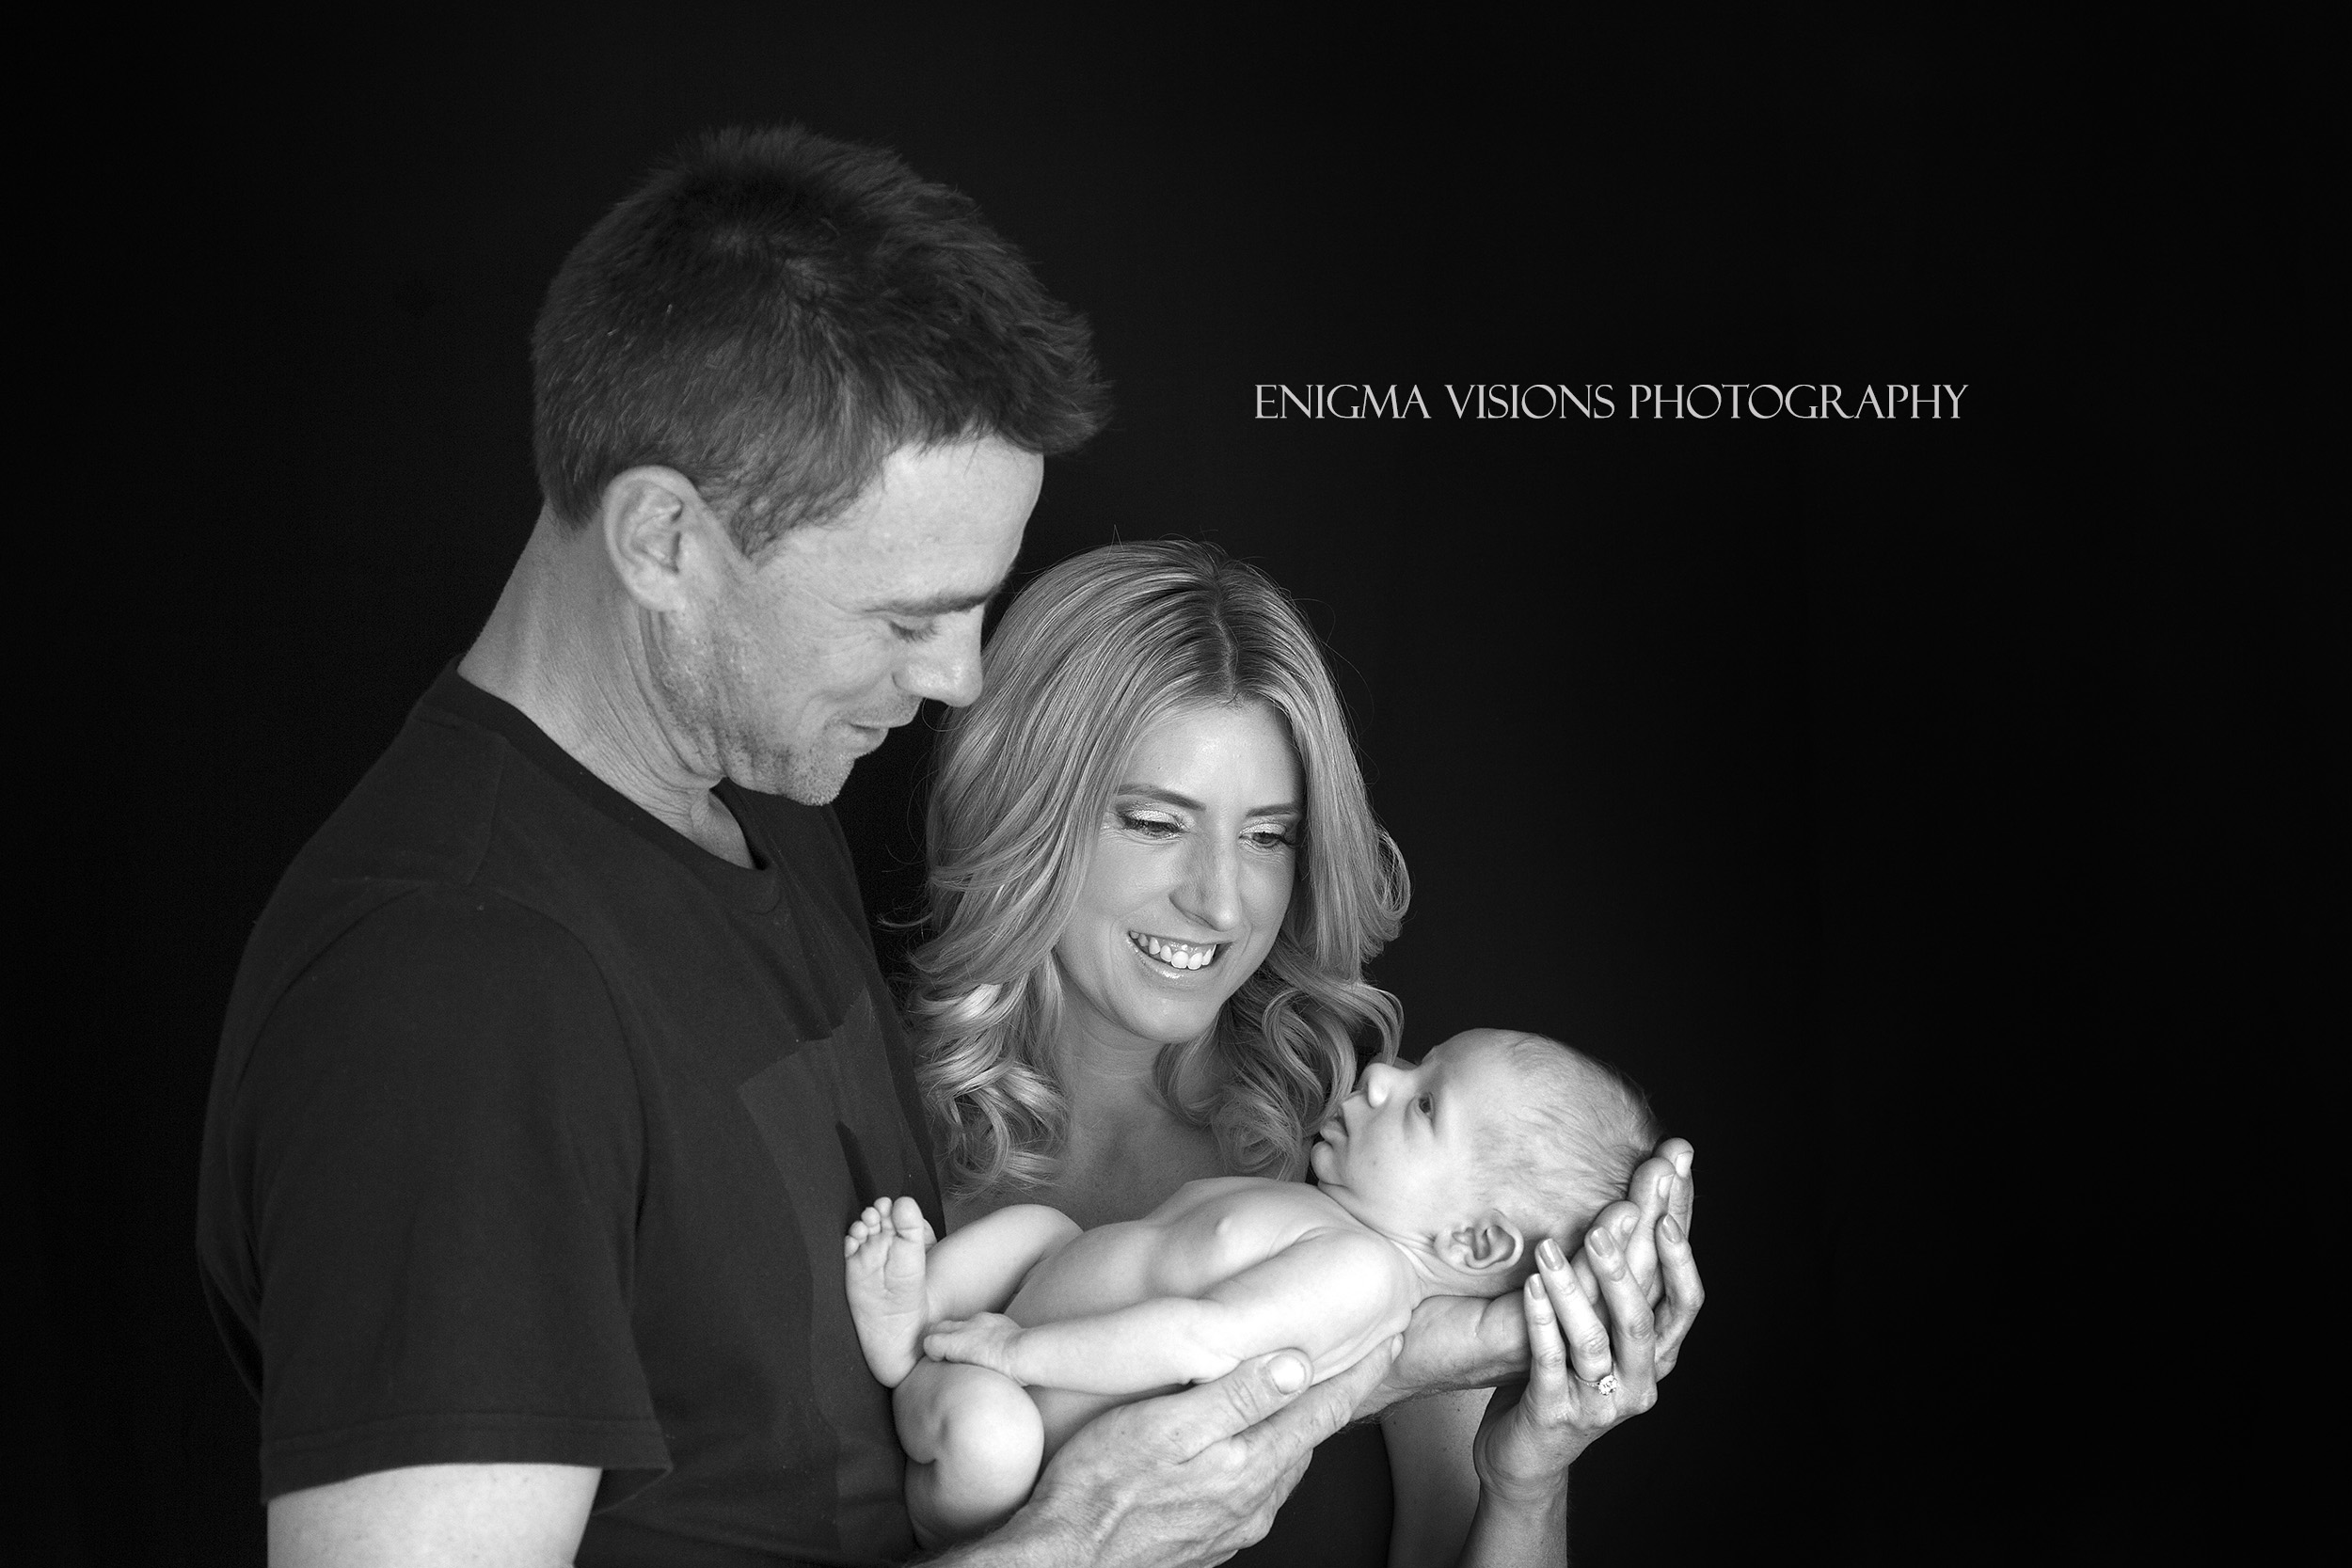 enigma_visions_photography_newborn_lifestyle_lux (6) copy.jpg